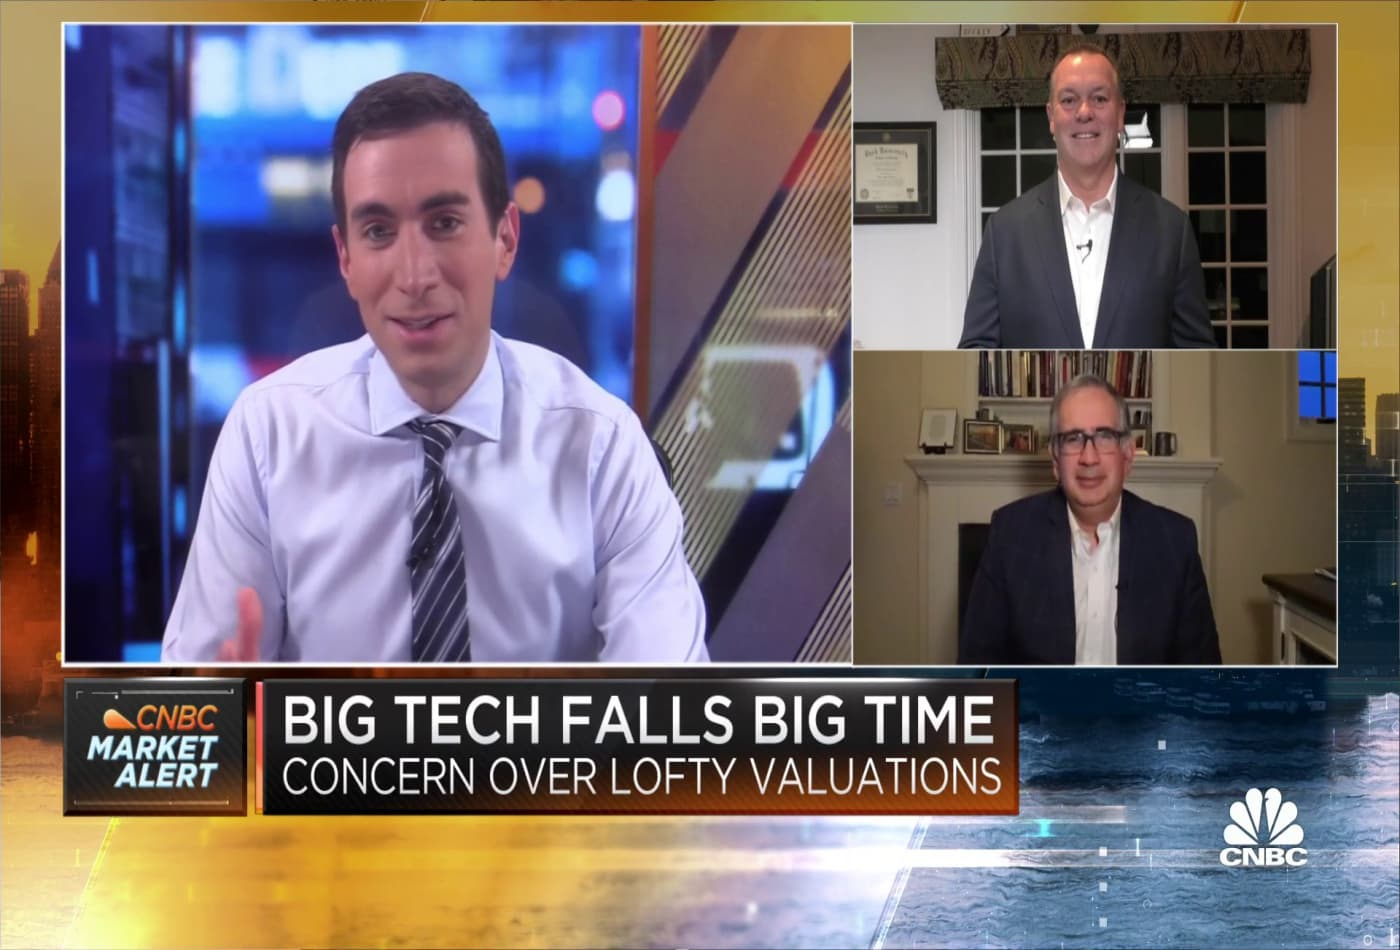 How two strategists are handling the recent decline in Big Tech stocks